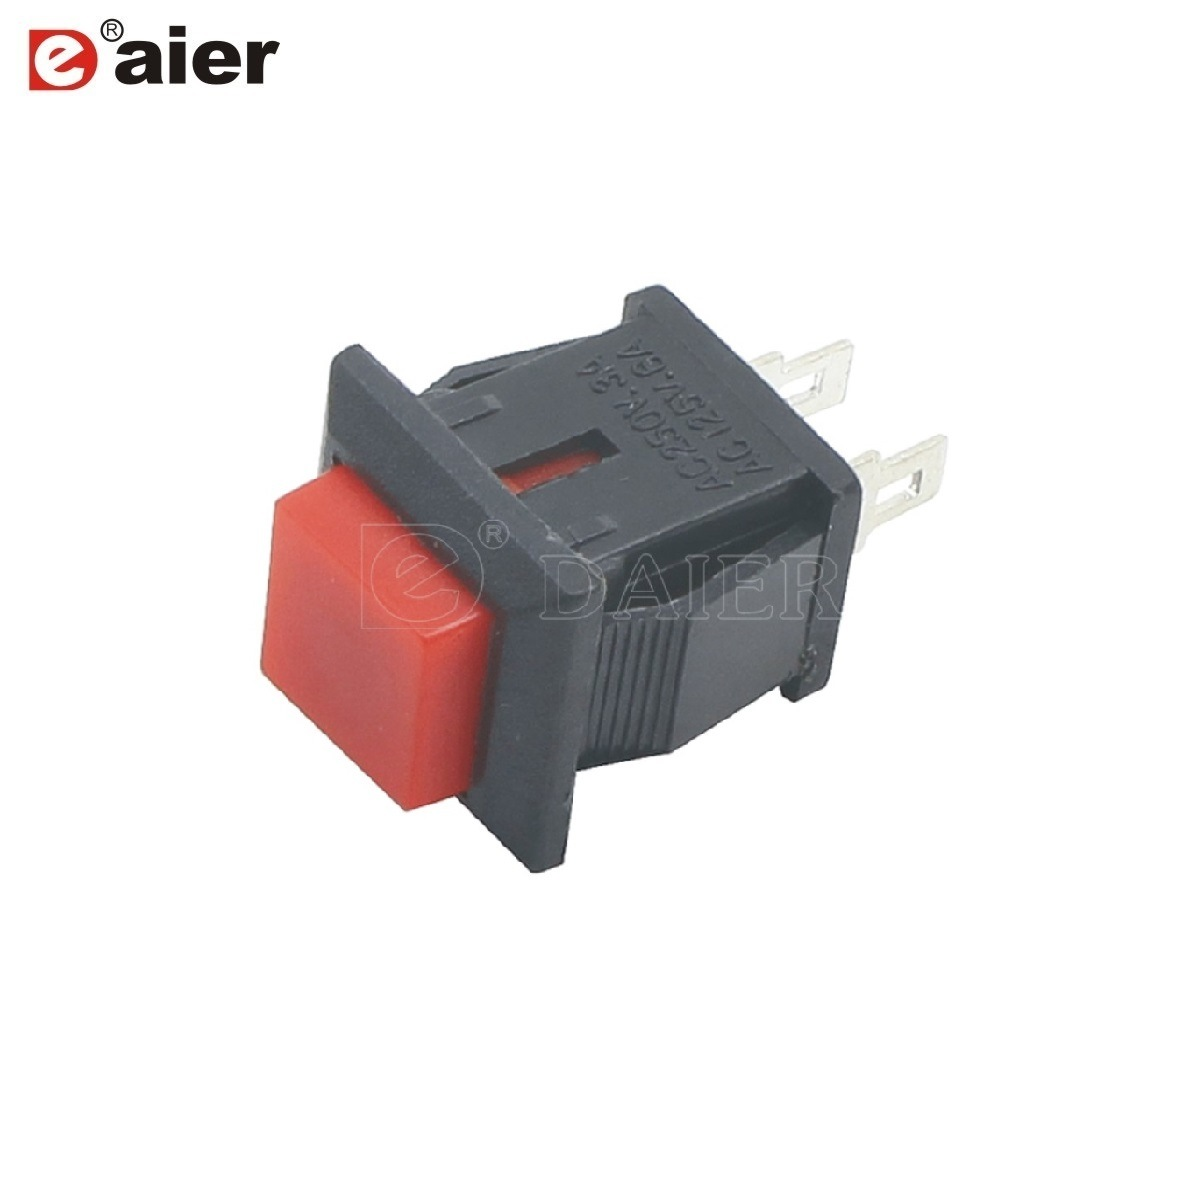 China 3a 250vac 2pin Momentary Square Plastic Push Button Switch Switches Large 10mm Latching Red